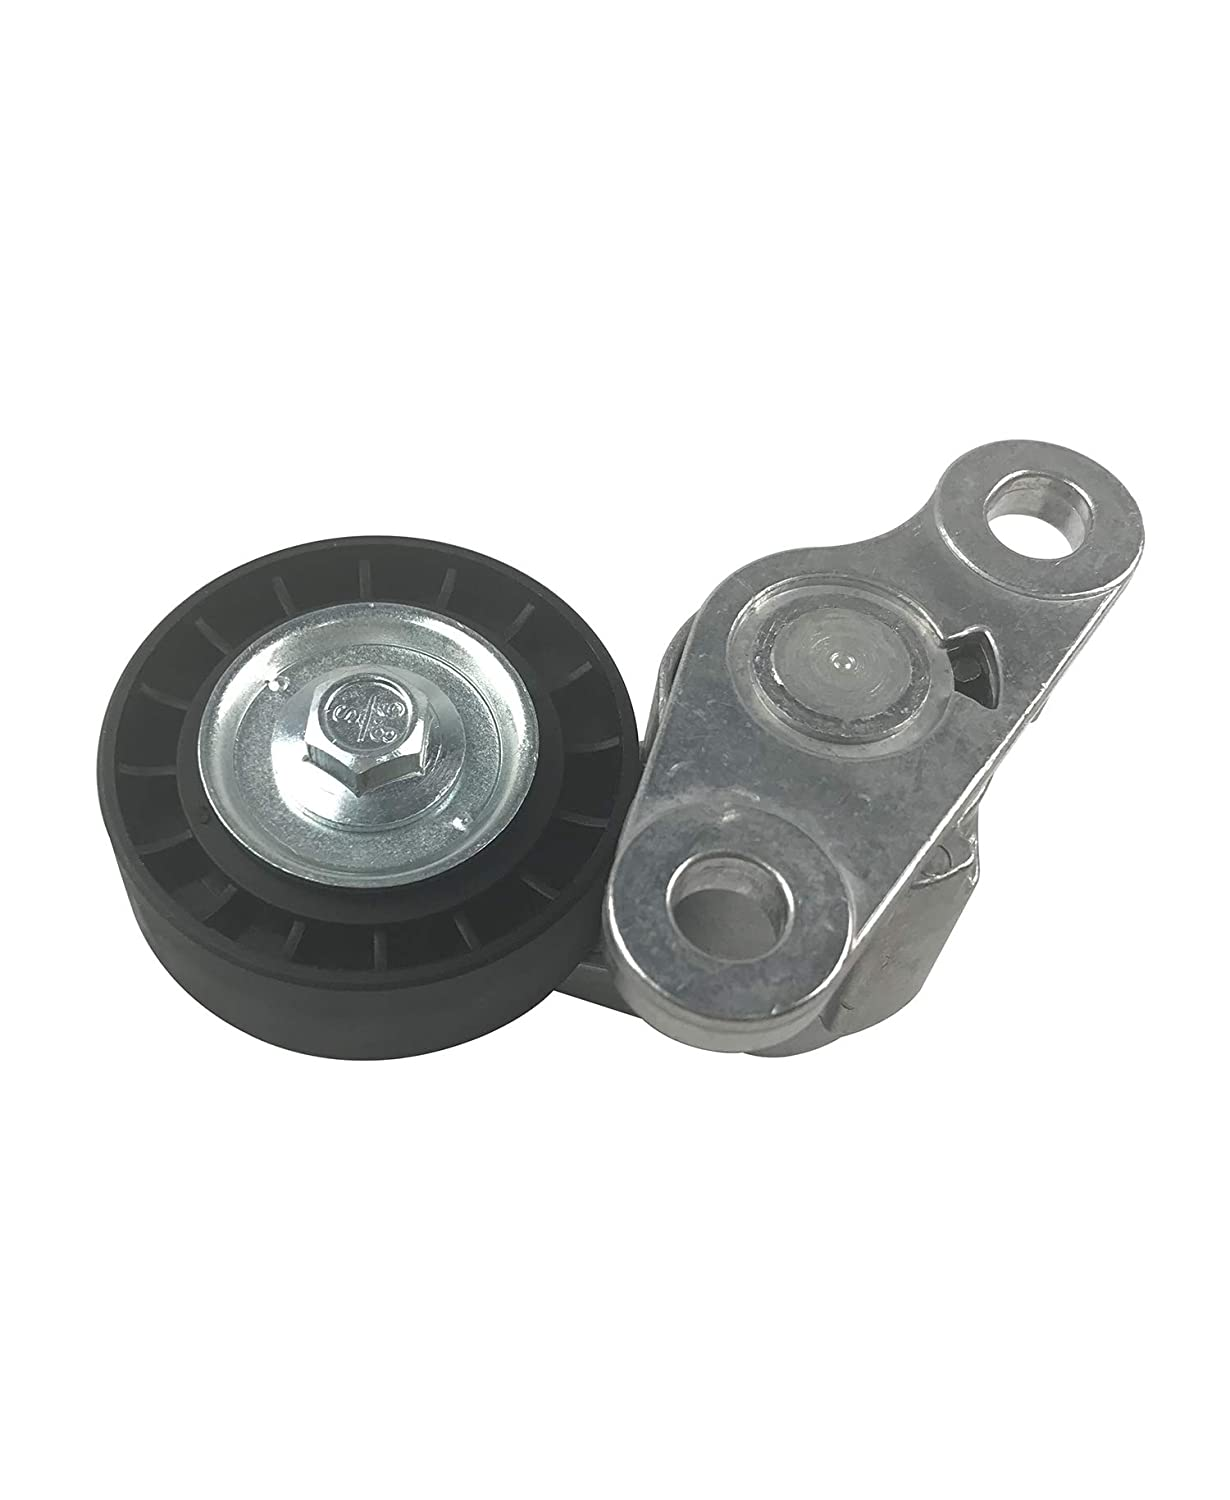 ACDelco 38489 Professional Automatic Belt Tensioner and Pulley Assembly